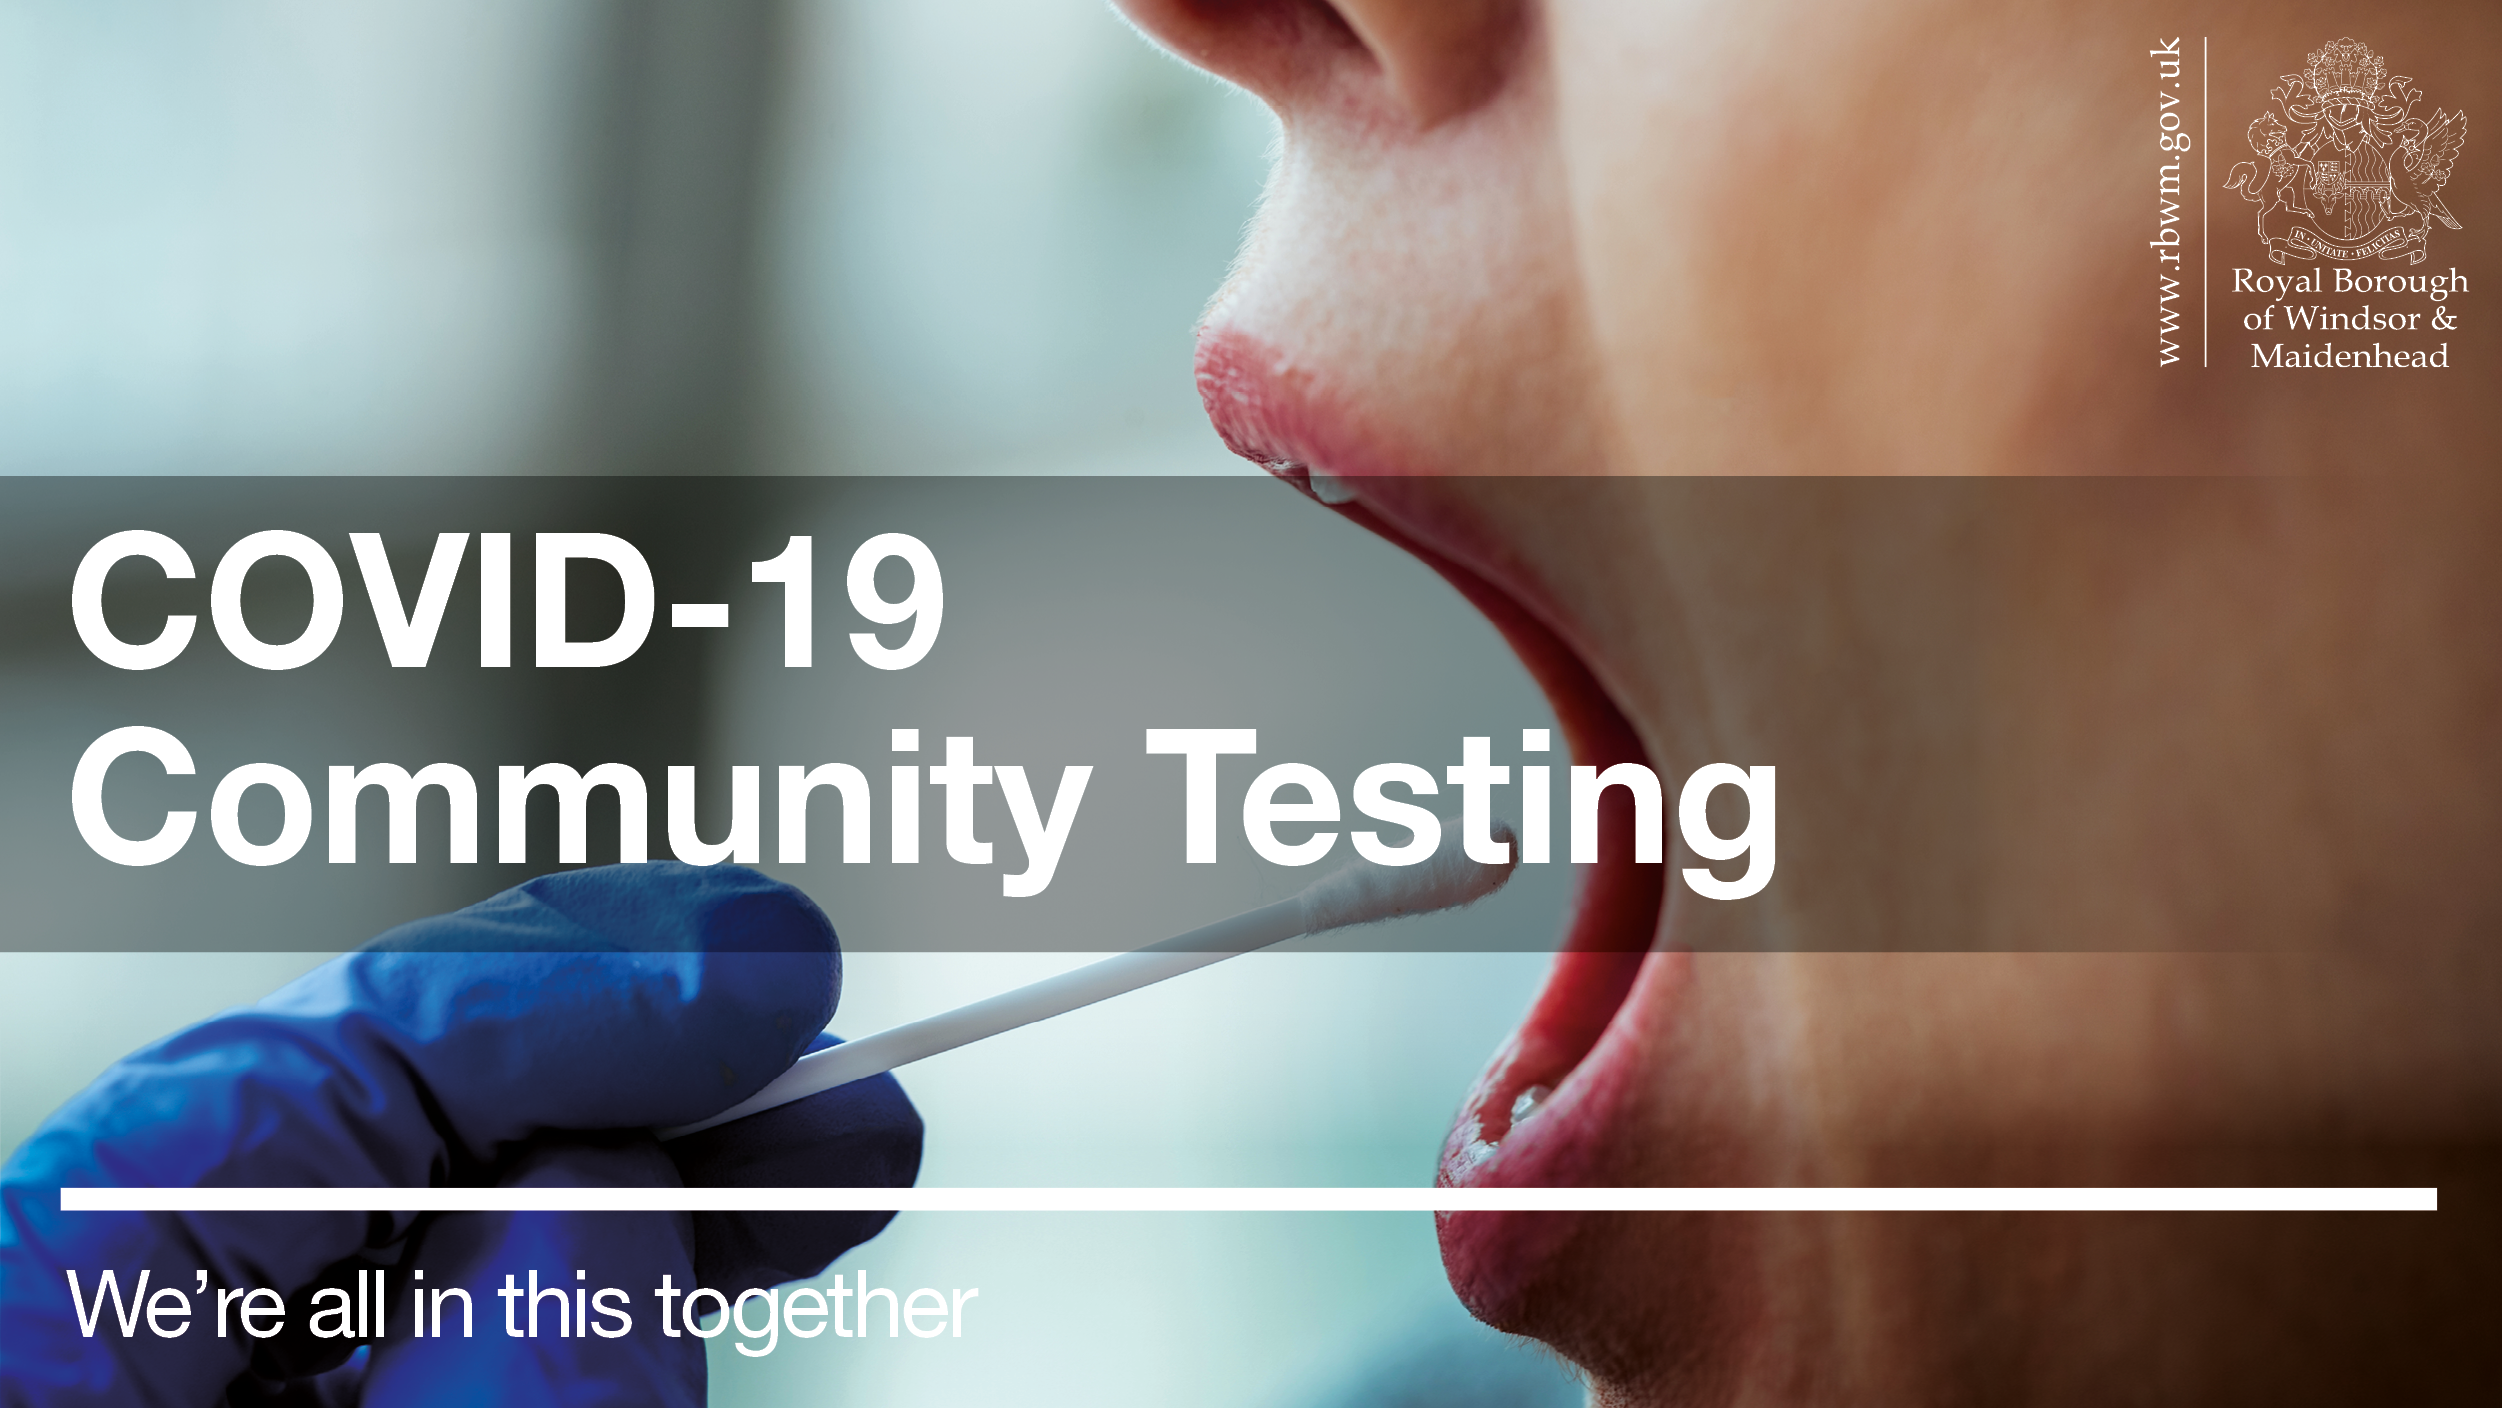 Free Community Testing for Covid-19